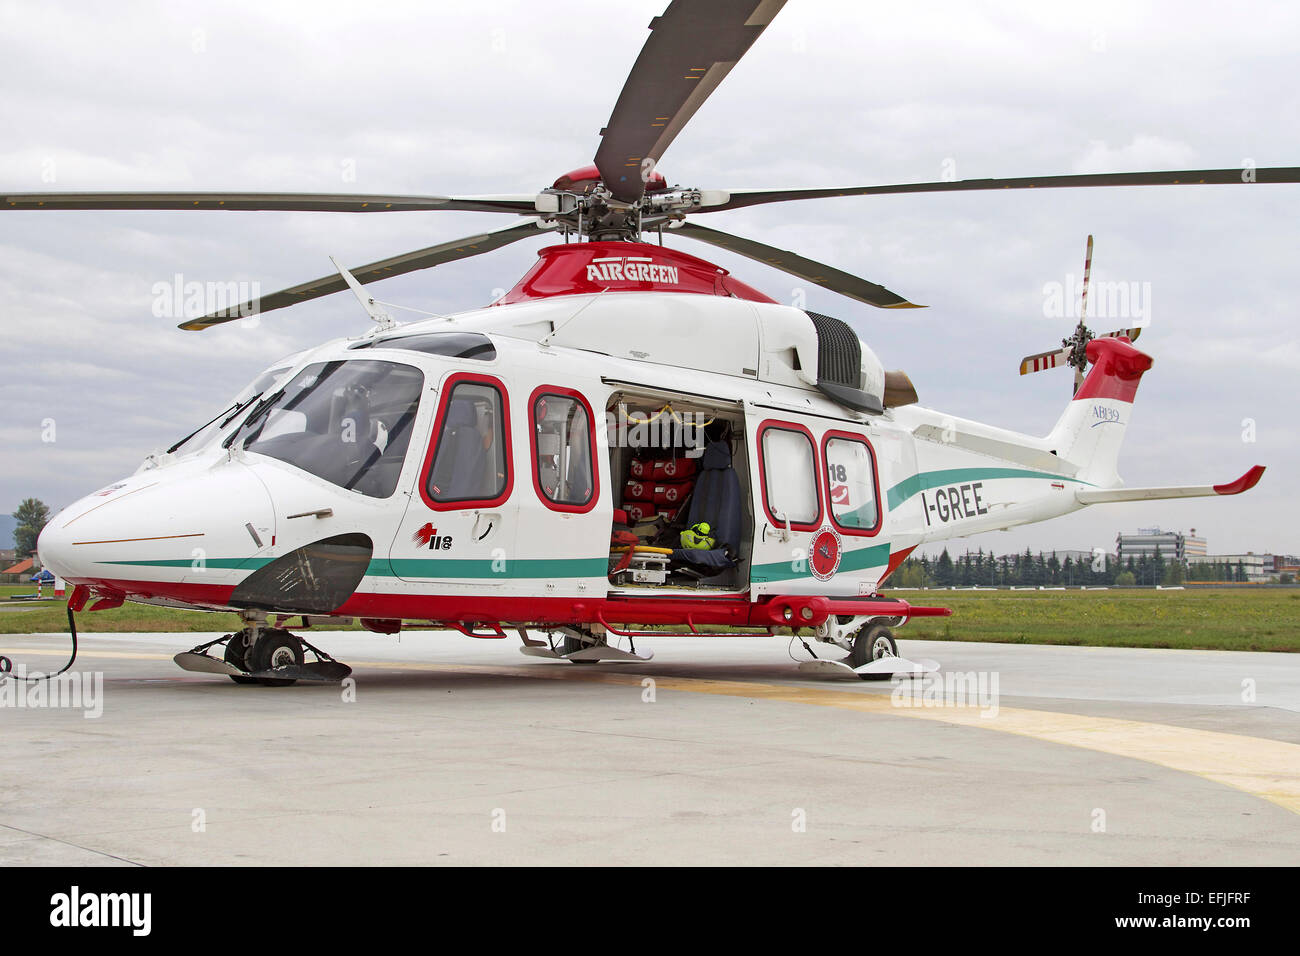 comp helicopters with Stock Photo Agustawestland Aw139 Air Ambulance Collegno Italy 78468867 on Airwolf Helicopter Tv Show besides Flightgear Flight Simulator further 752270 furthermore Stock Photo Vietnam War 1957 1975 American Soldiers In A Helicopter Bell Uh 1 60266624 also Collectionodwn Original Pokemon Names List.